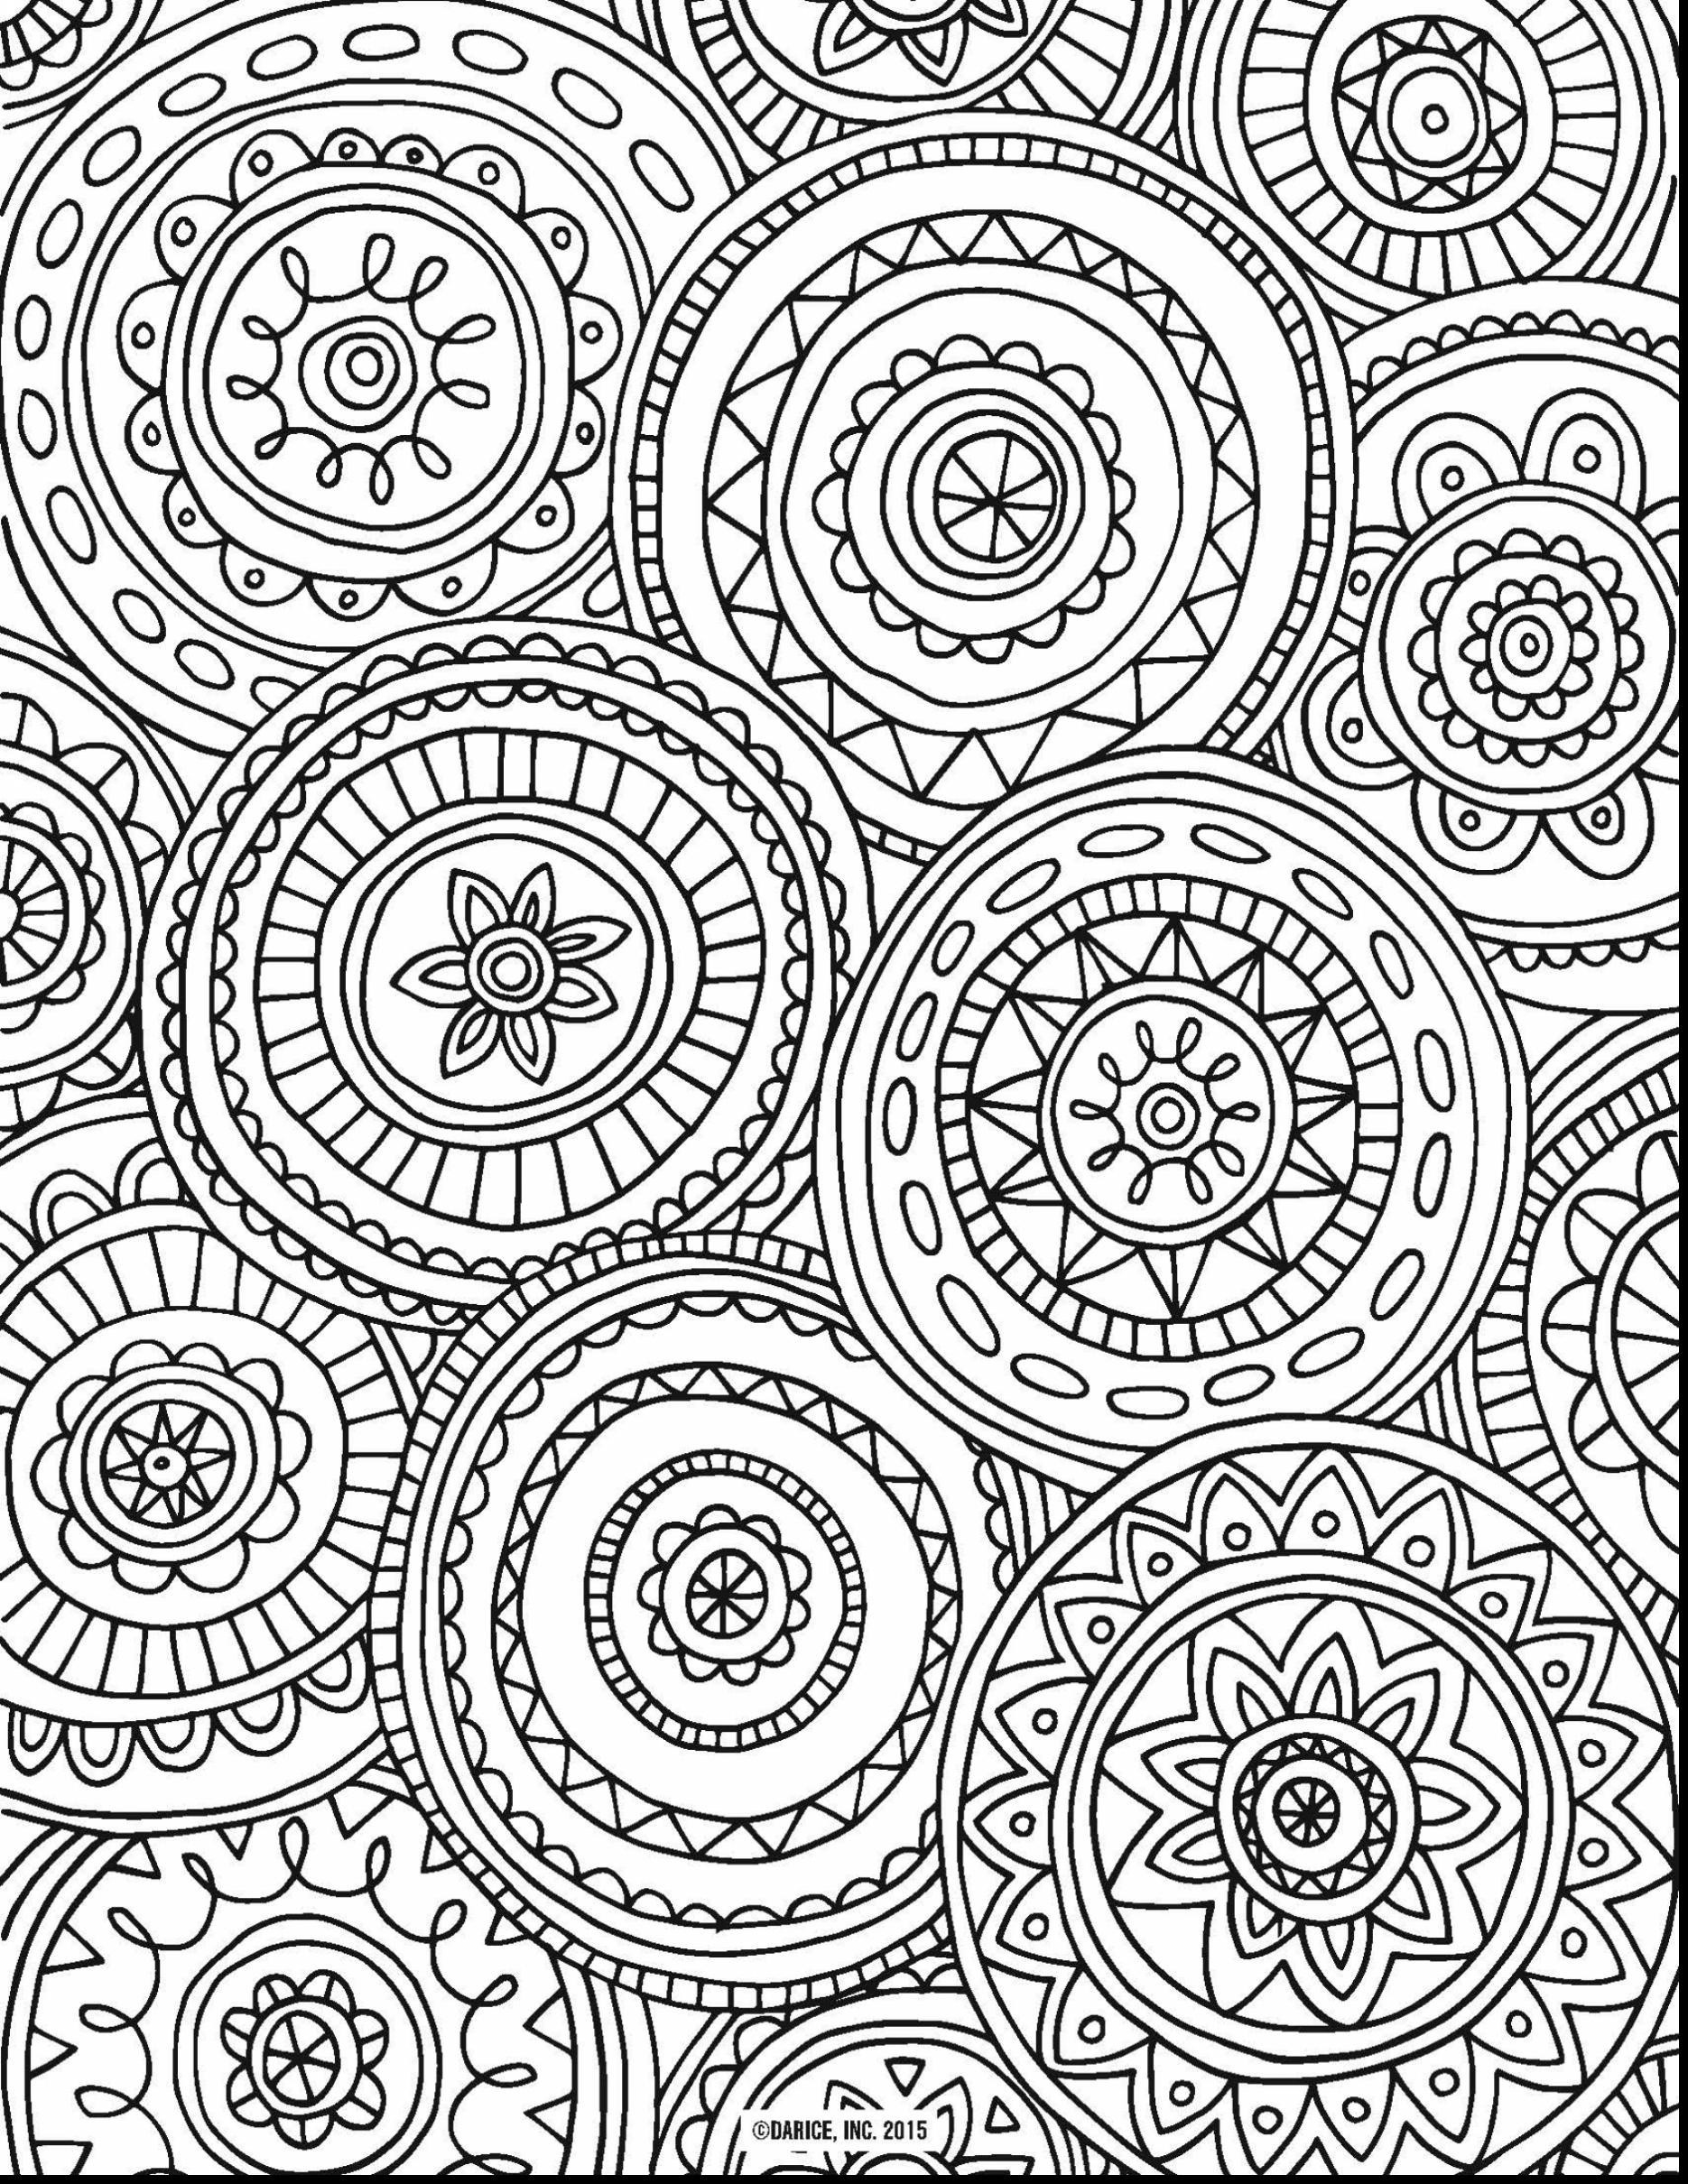 Best Of Free Printable Mandala Coloring Pages For Adults Pdf - Free Printable Coloring Pages For Adults Pdf